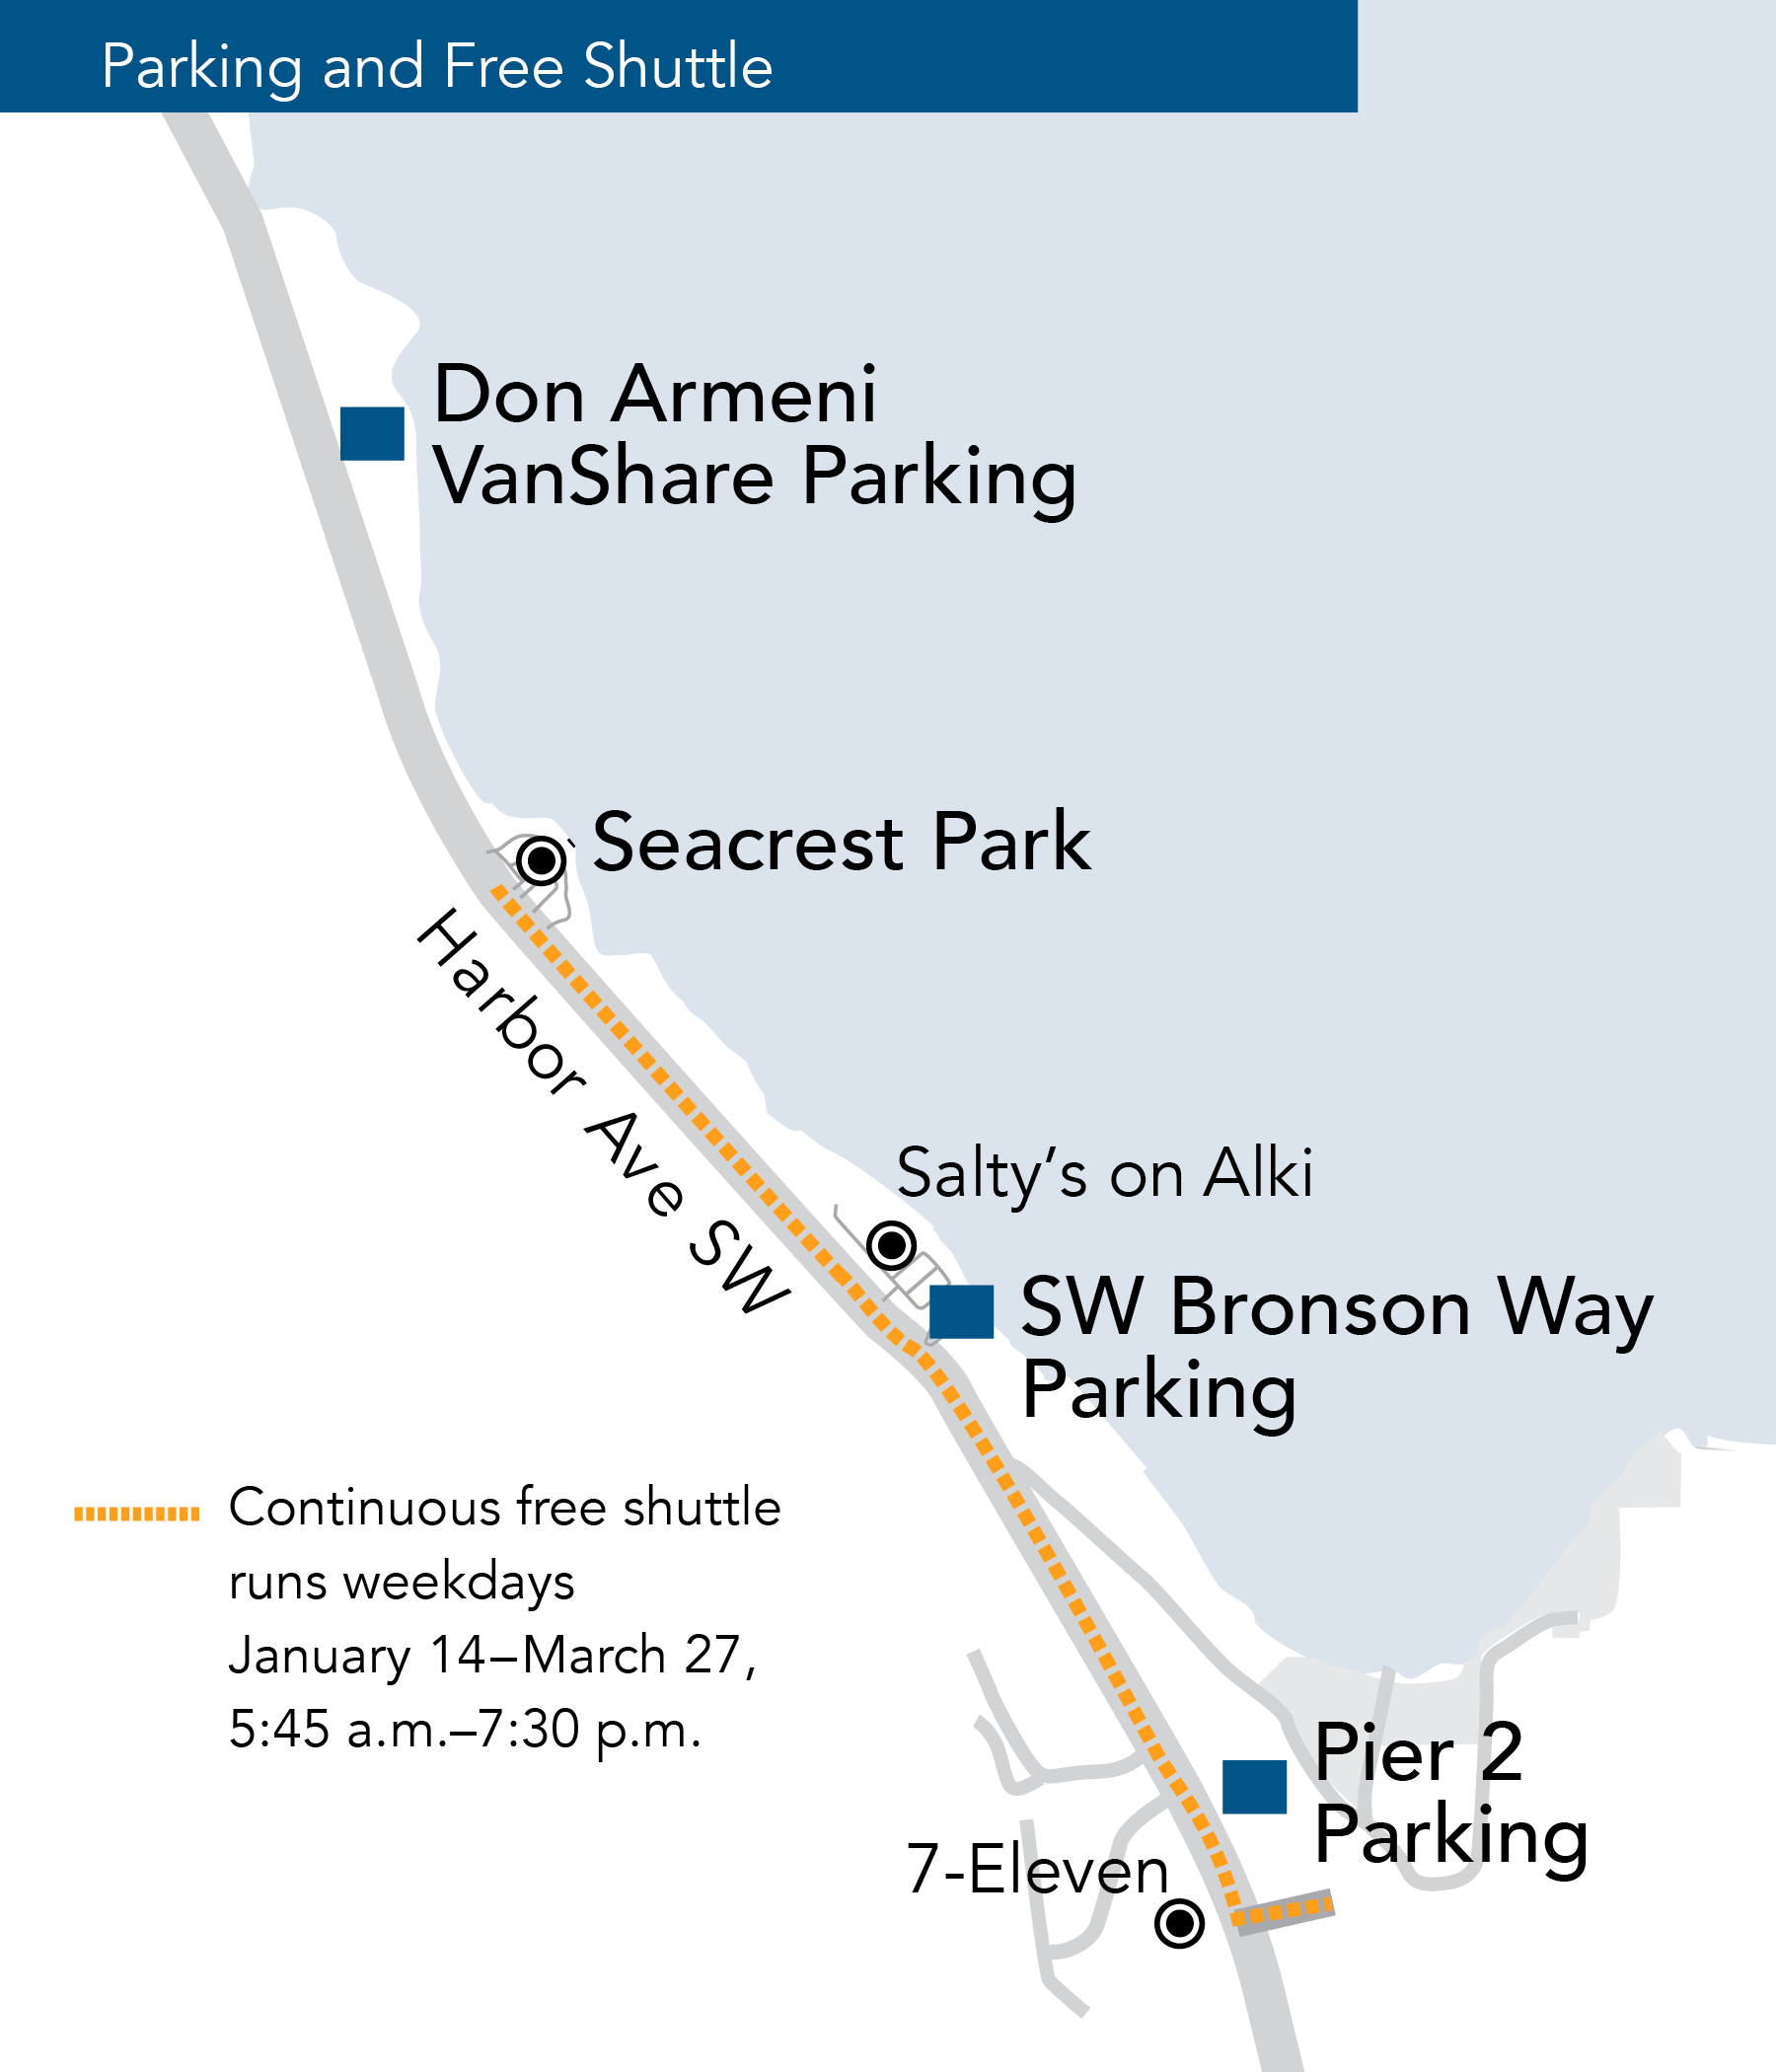 A map showing the Ride2 parking and shuttle zones.